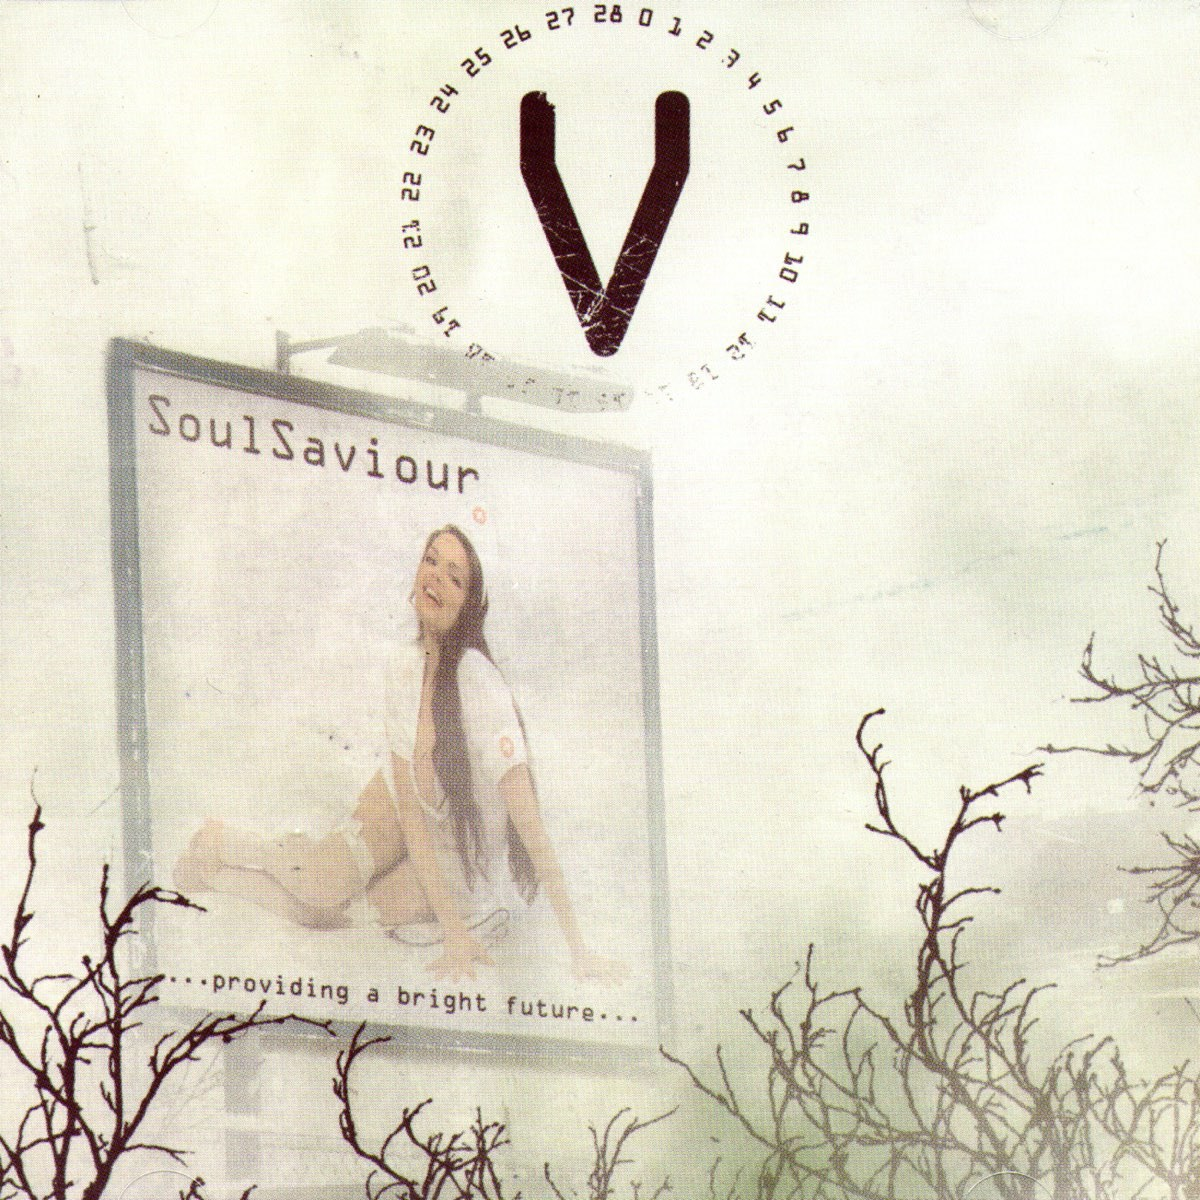 Review for V:28 - SoulSaviour